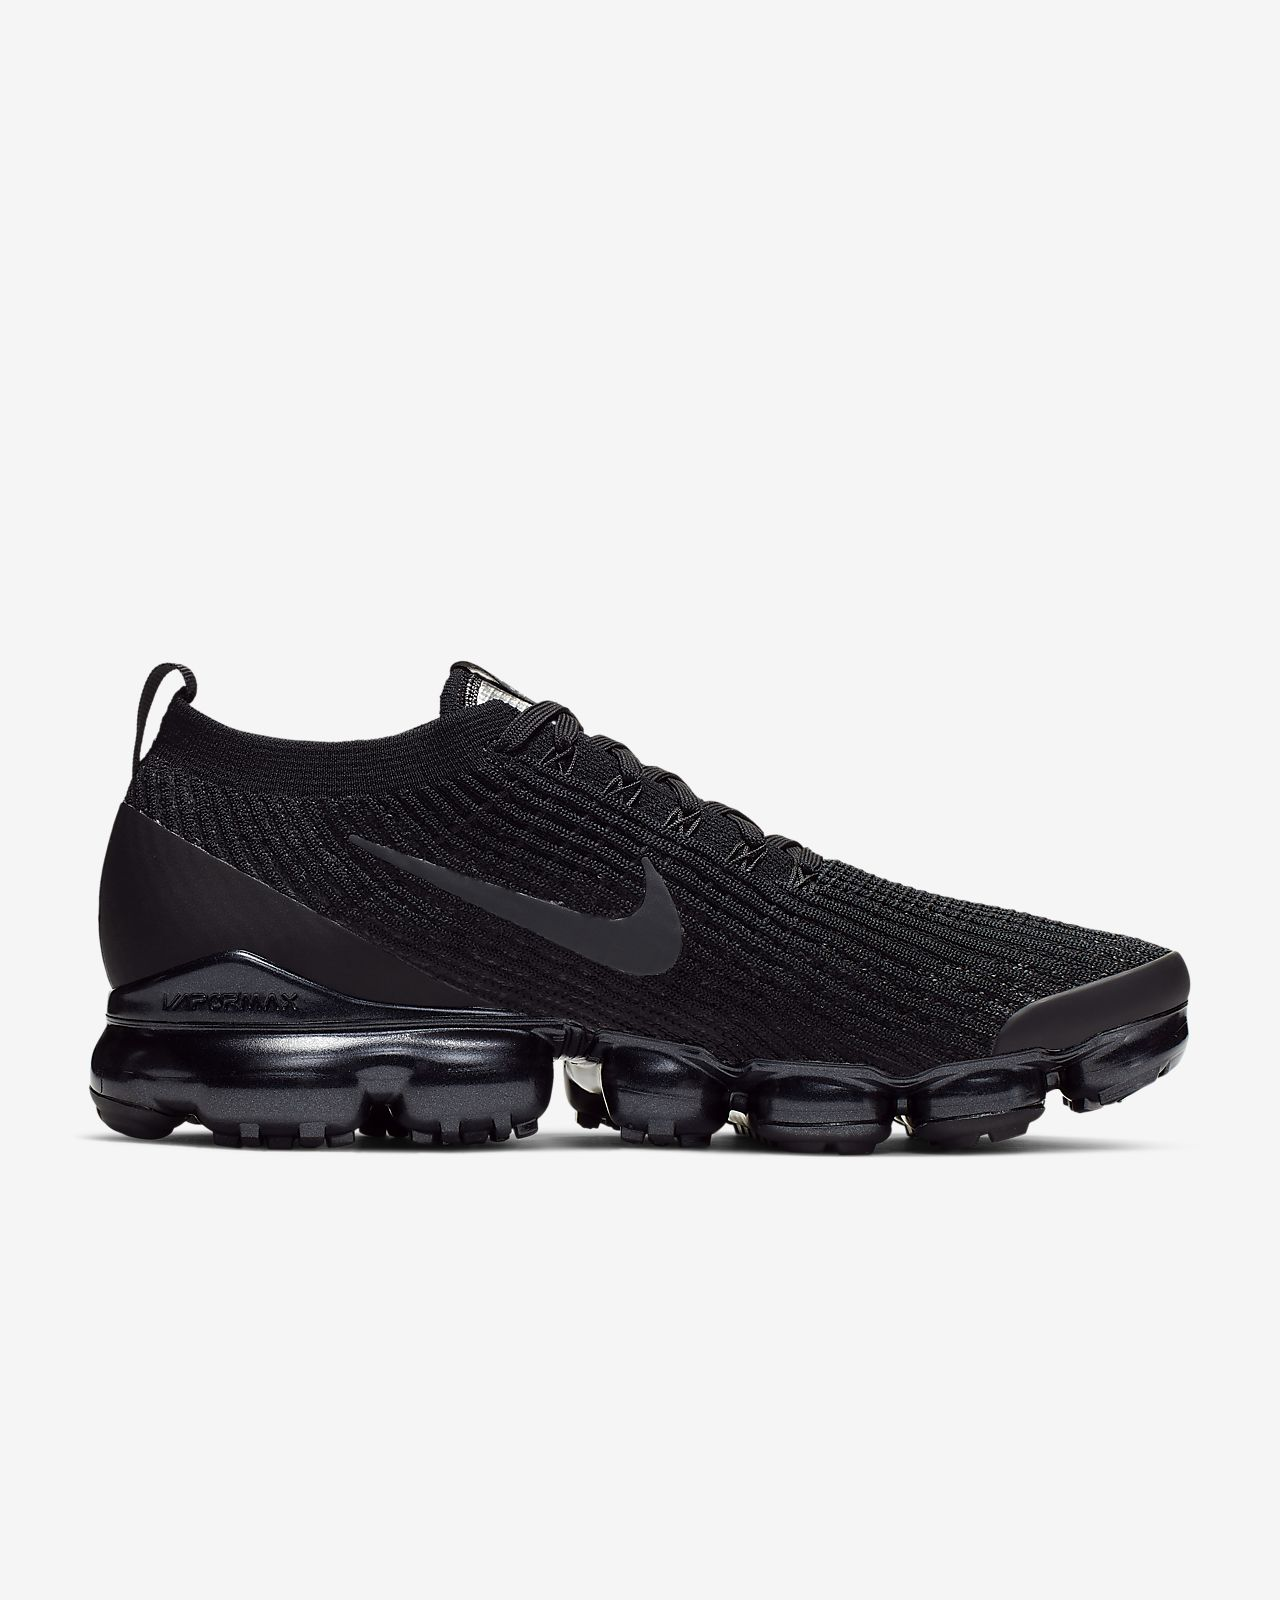 men's nike air vapormax flyknit 3 running shoes review